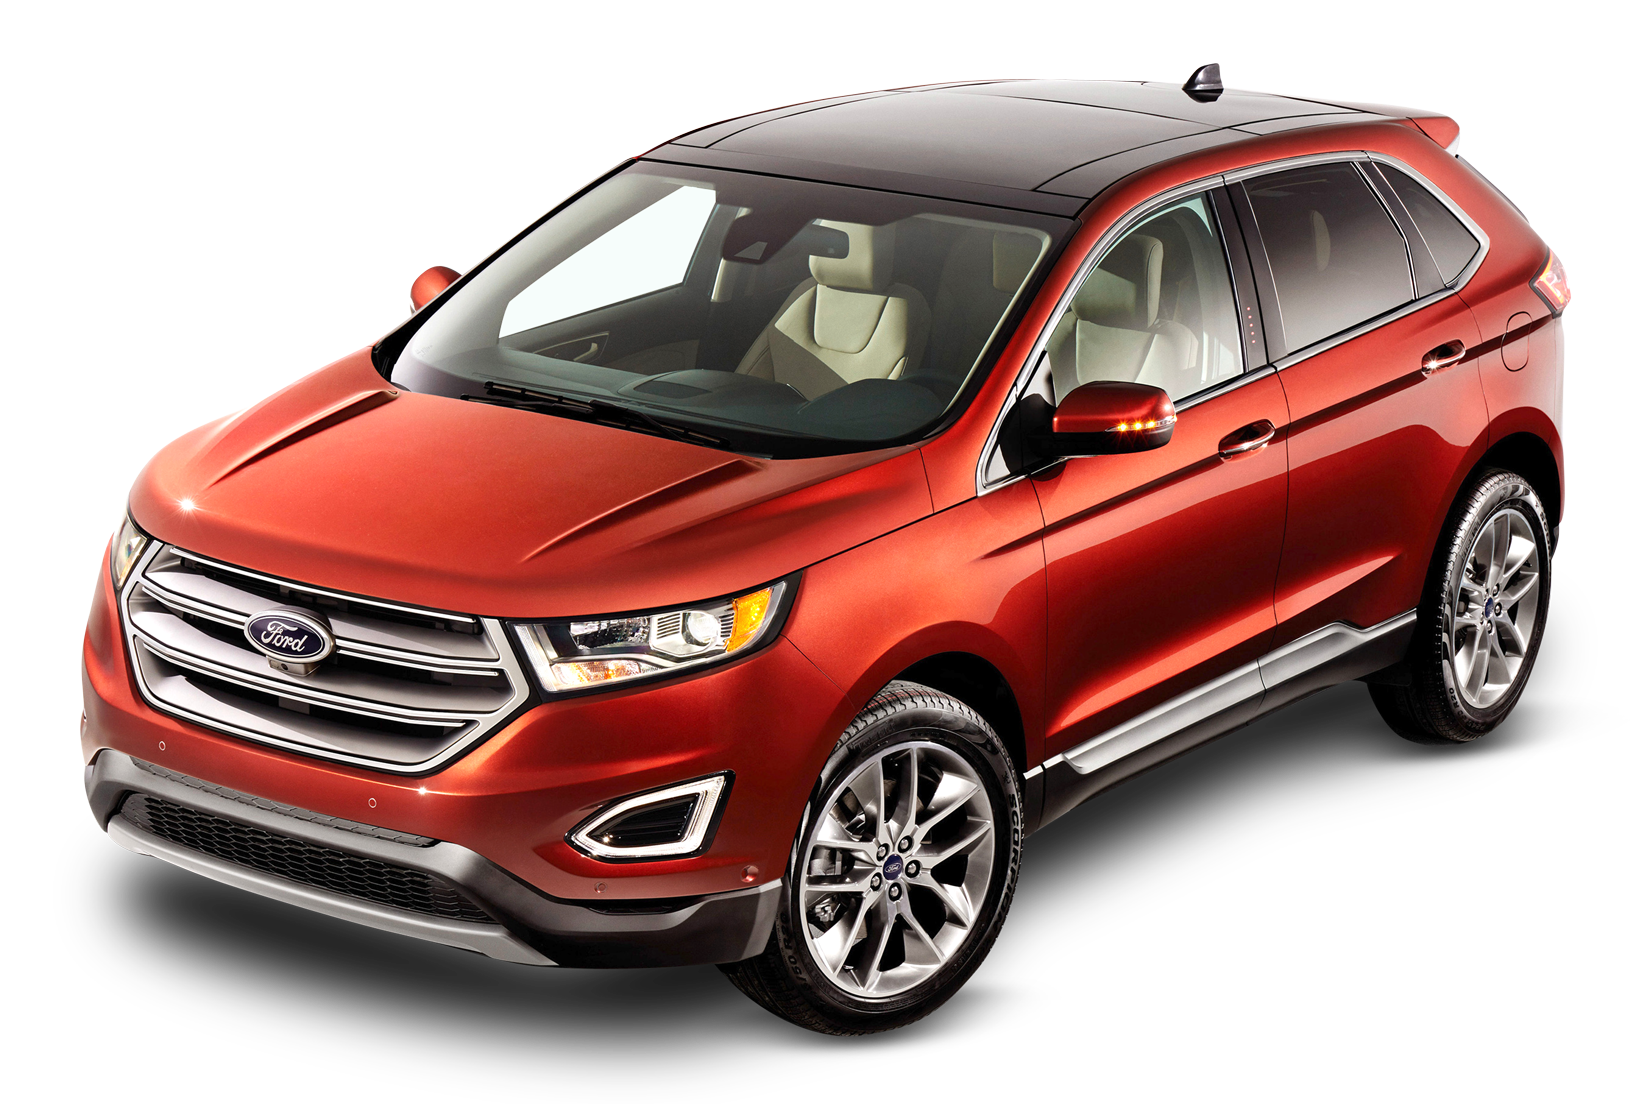 Red Ford Edge Car